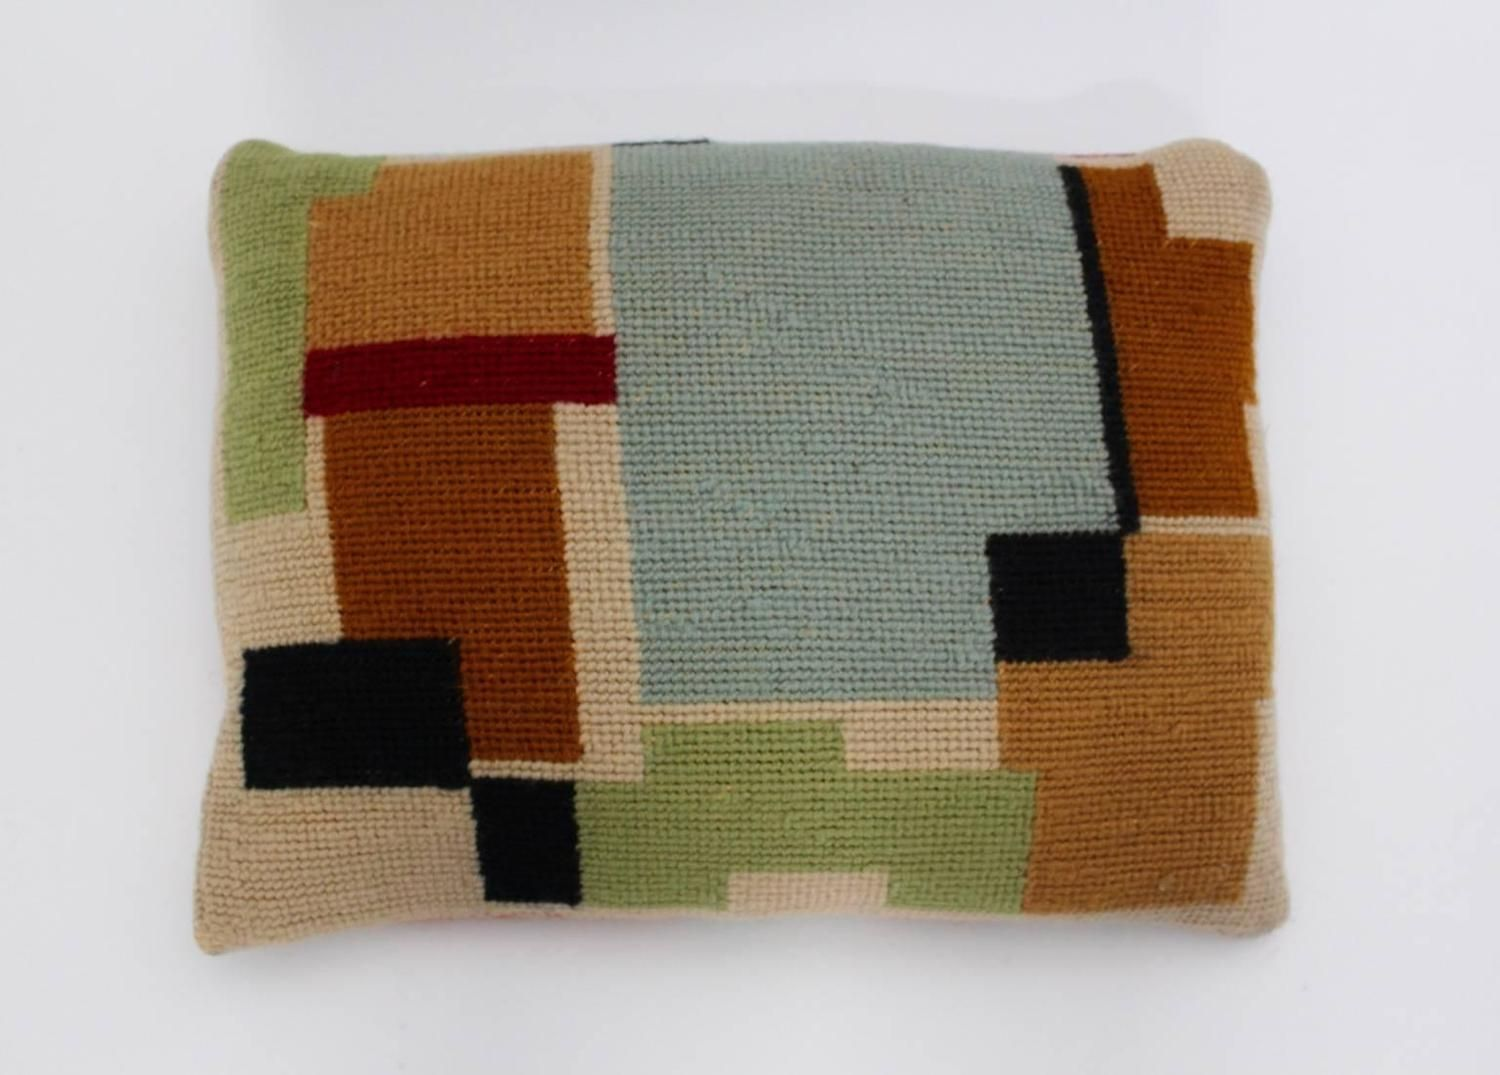 Bauhaus multicolored hand embroidery wool pillow with geometric